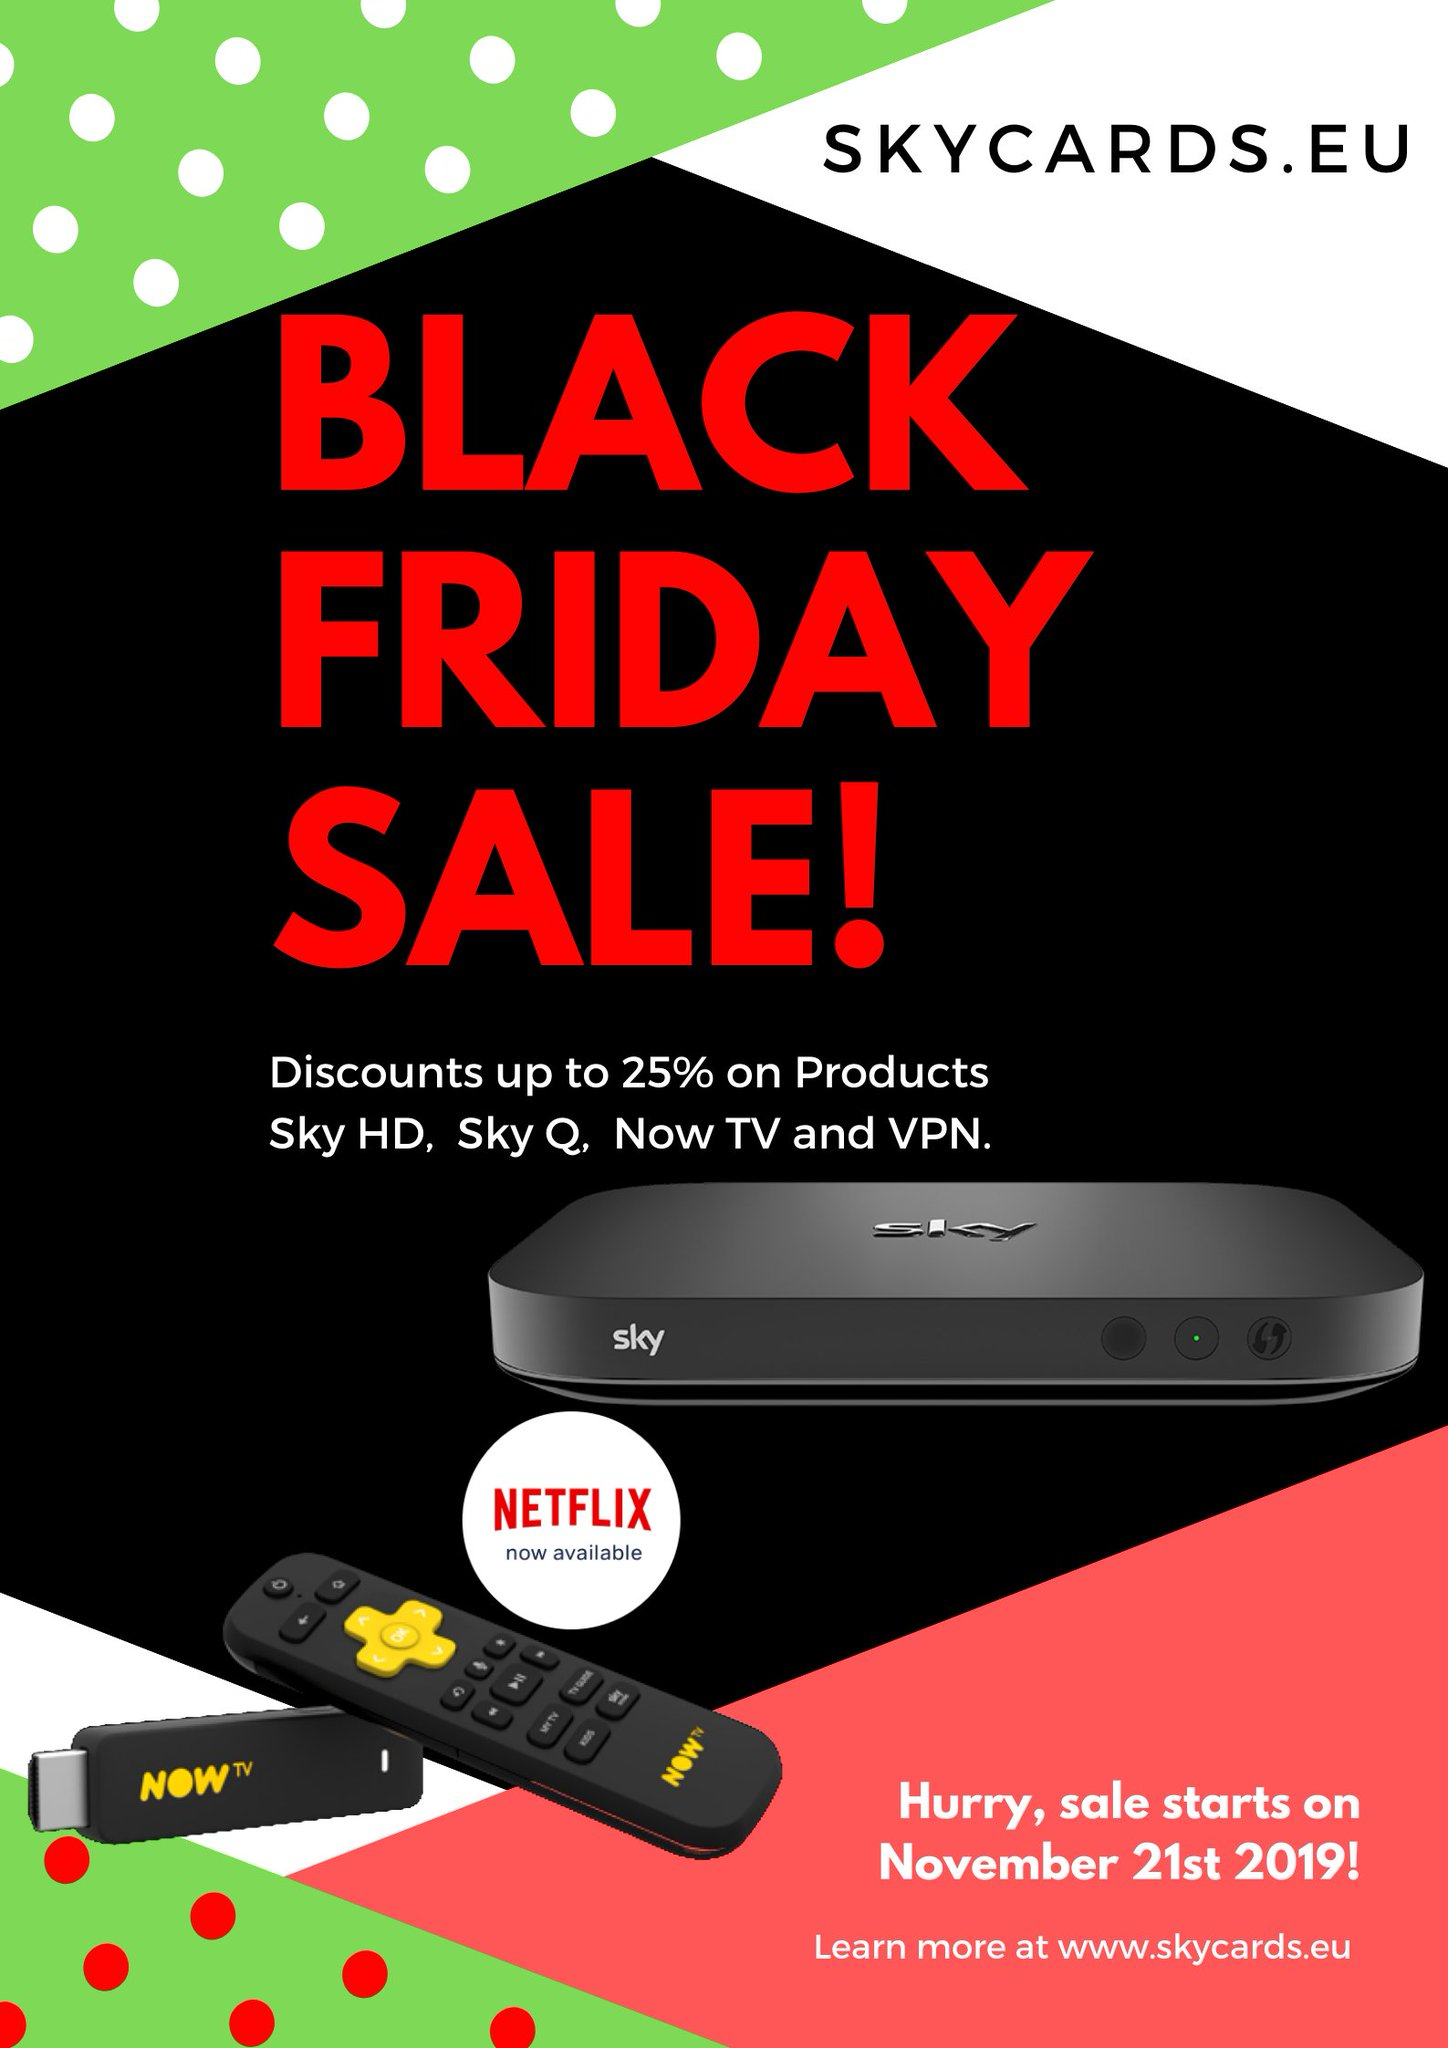 Skycards Eu On Twitter Black Friday Sale Coming Soon To Https T Co Vqcmqkamtx Skyhd Skytvabroad Skytv Sportsabroad Up To 25 Off